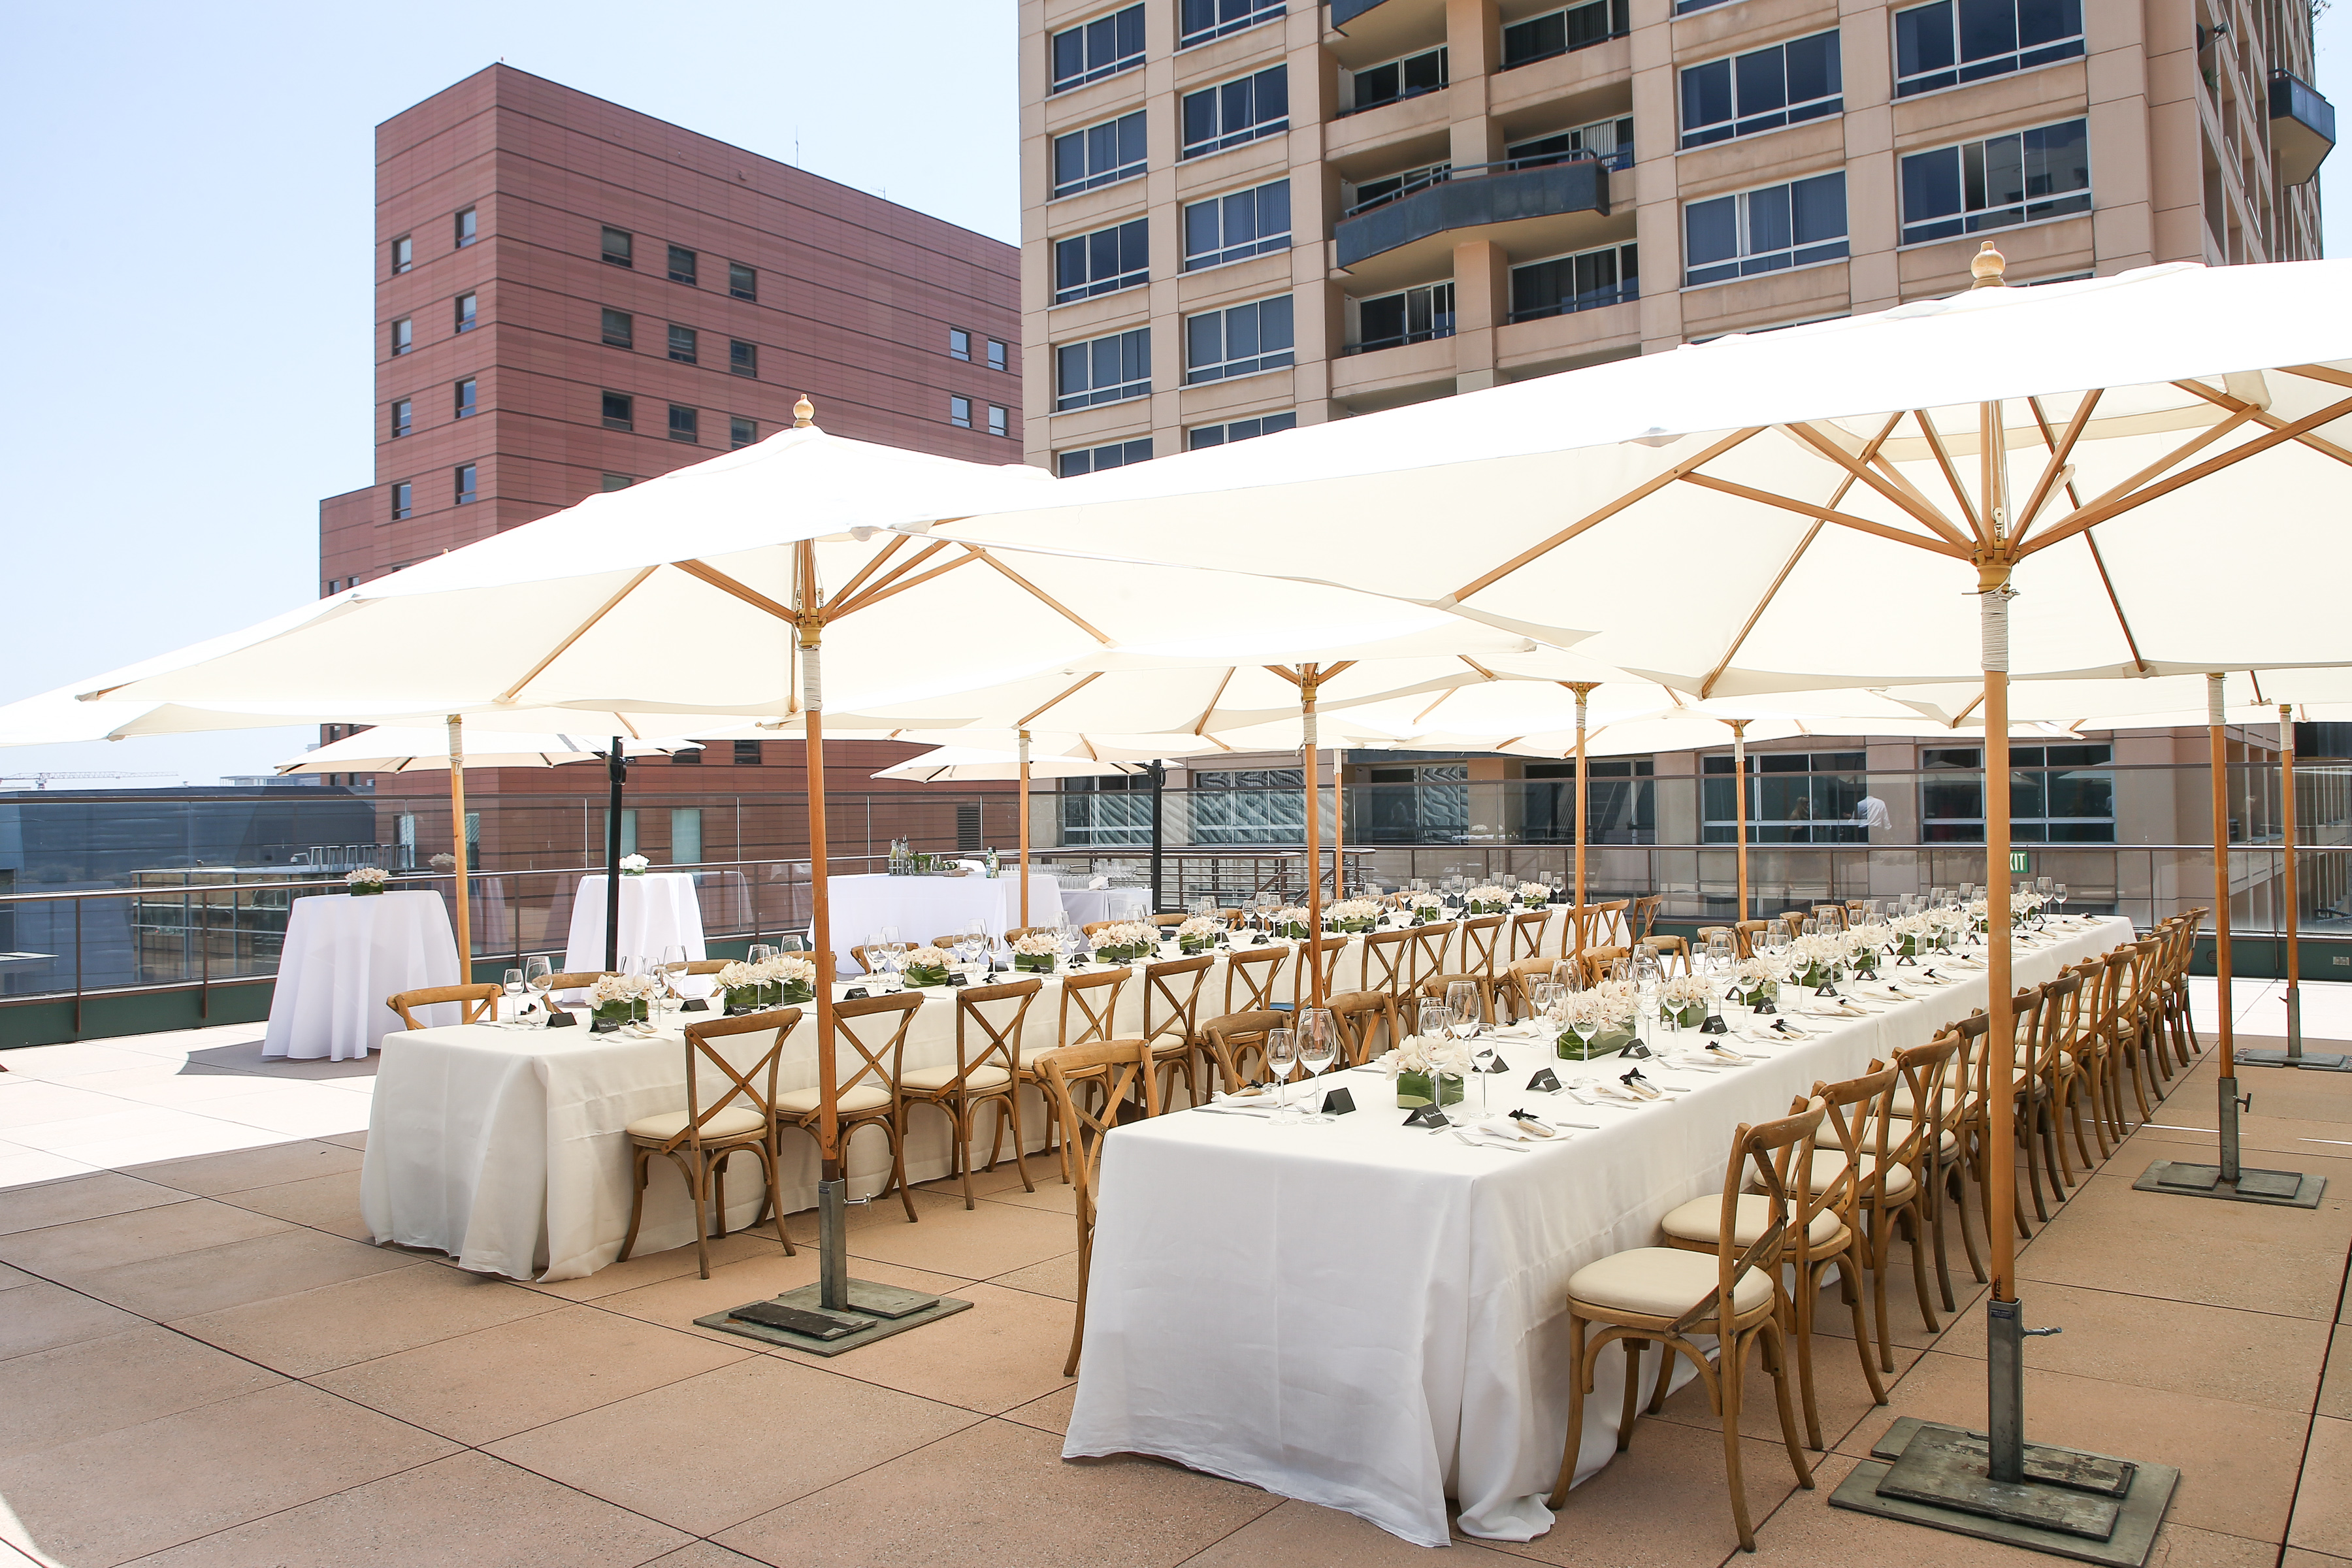 Roof Terrace, photographed by BFA, photo courtesy of Cultured Magazine